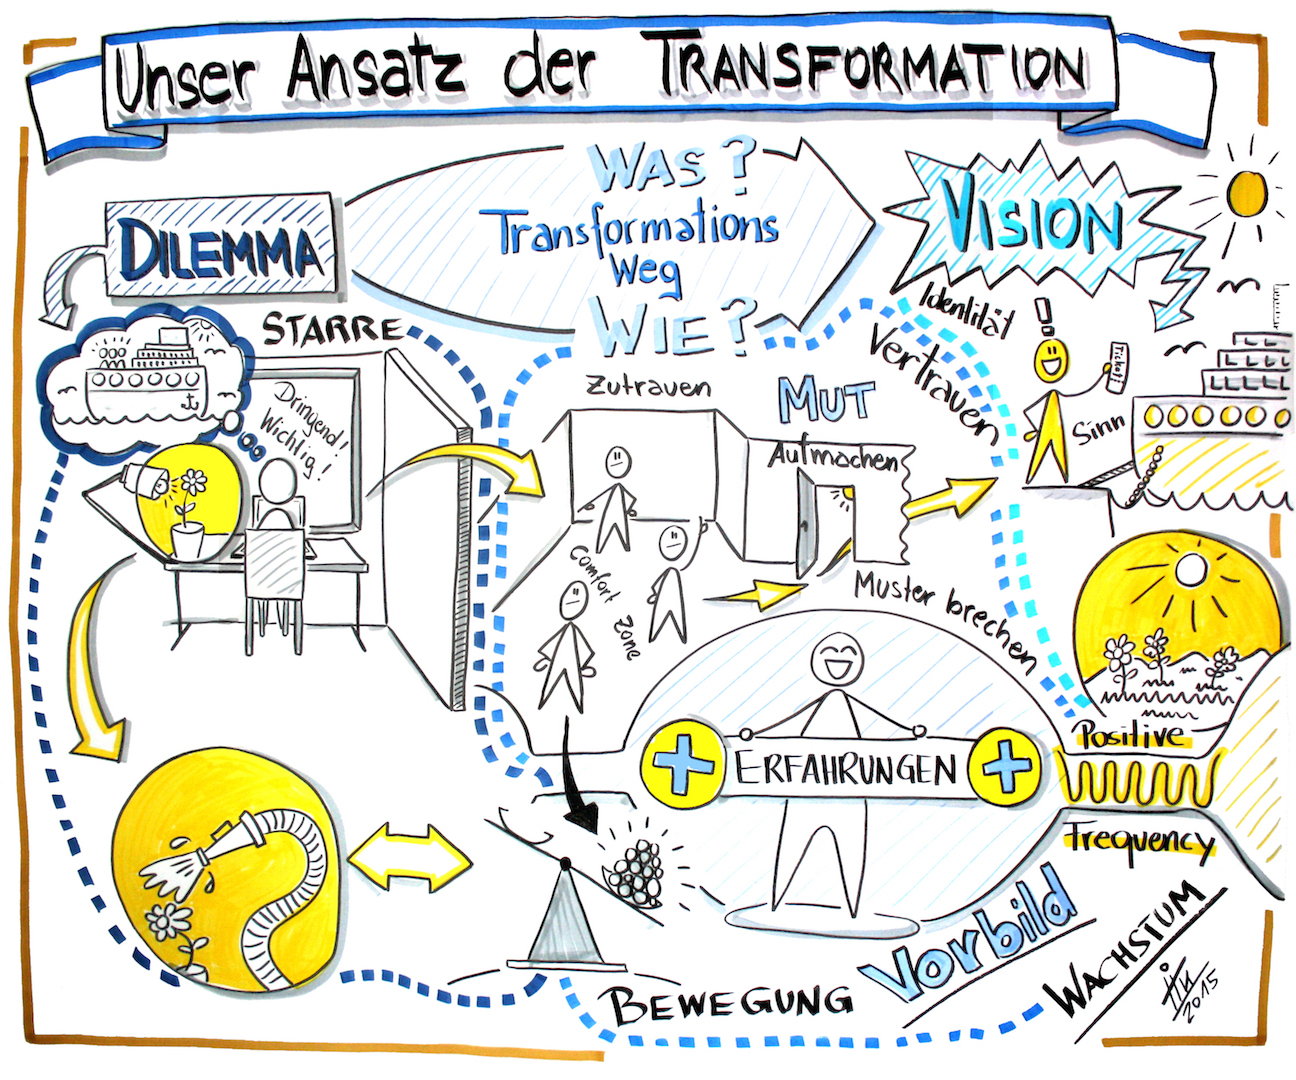 VisualTransformation_Beispiel_#1.jpg